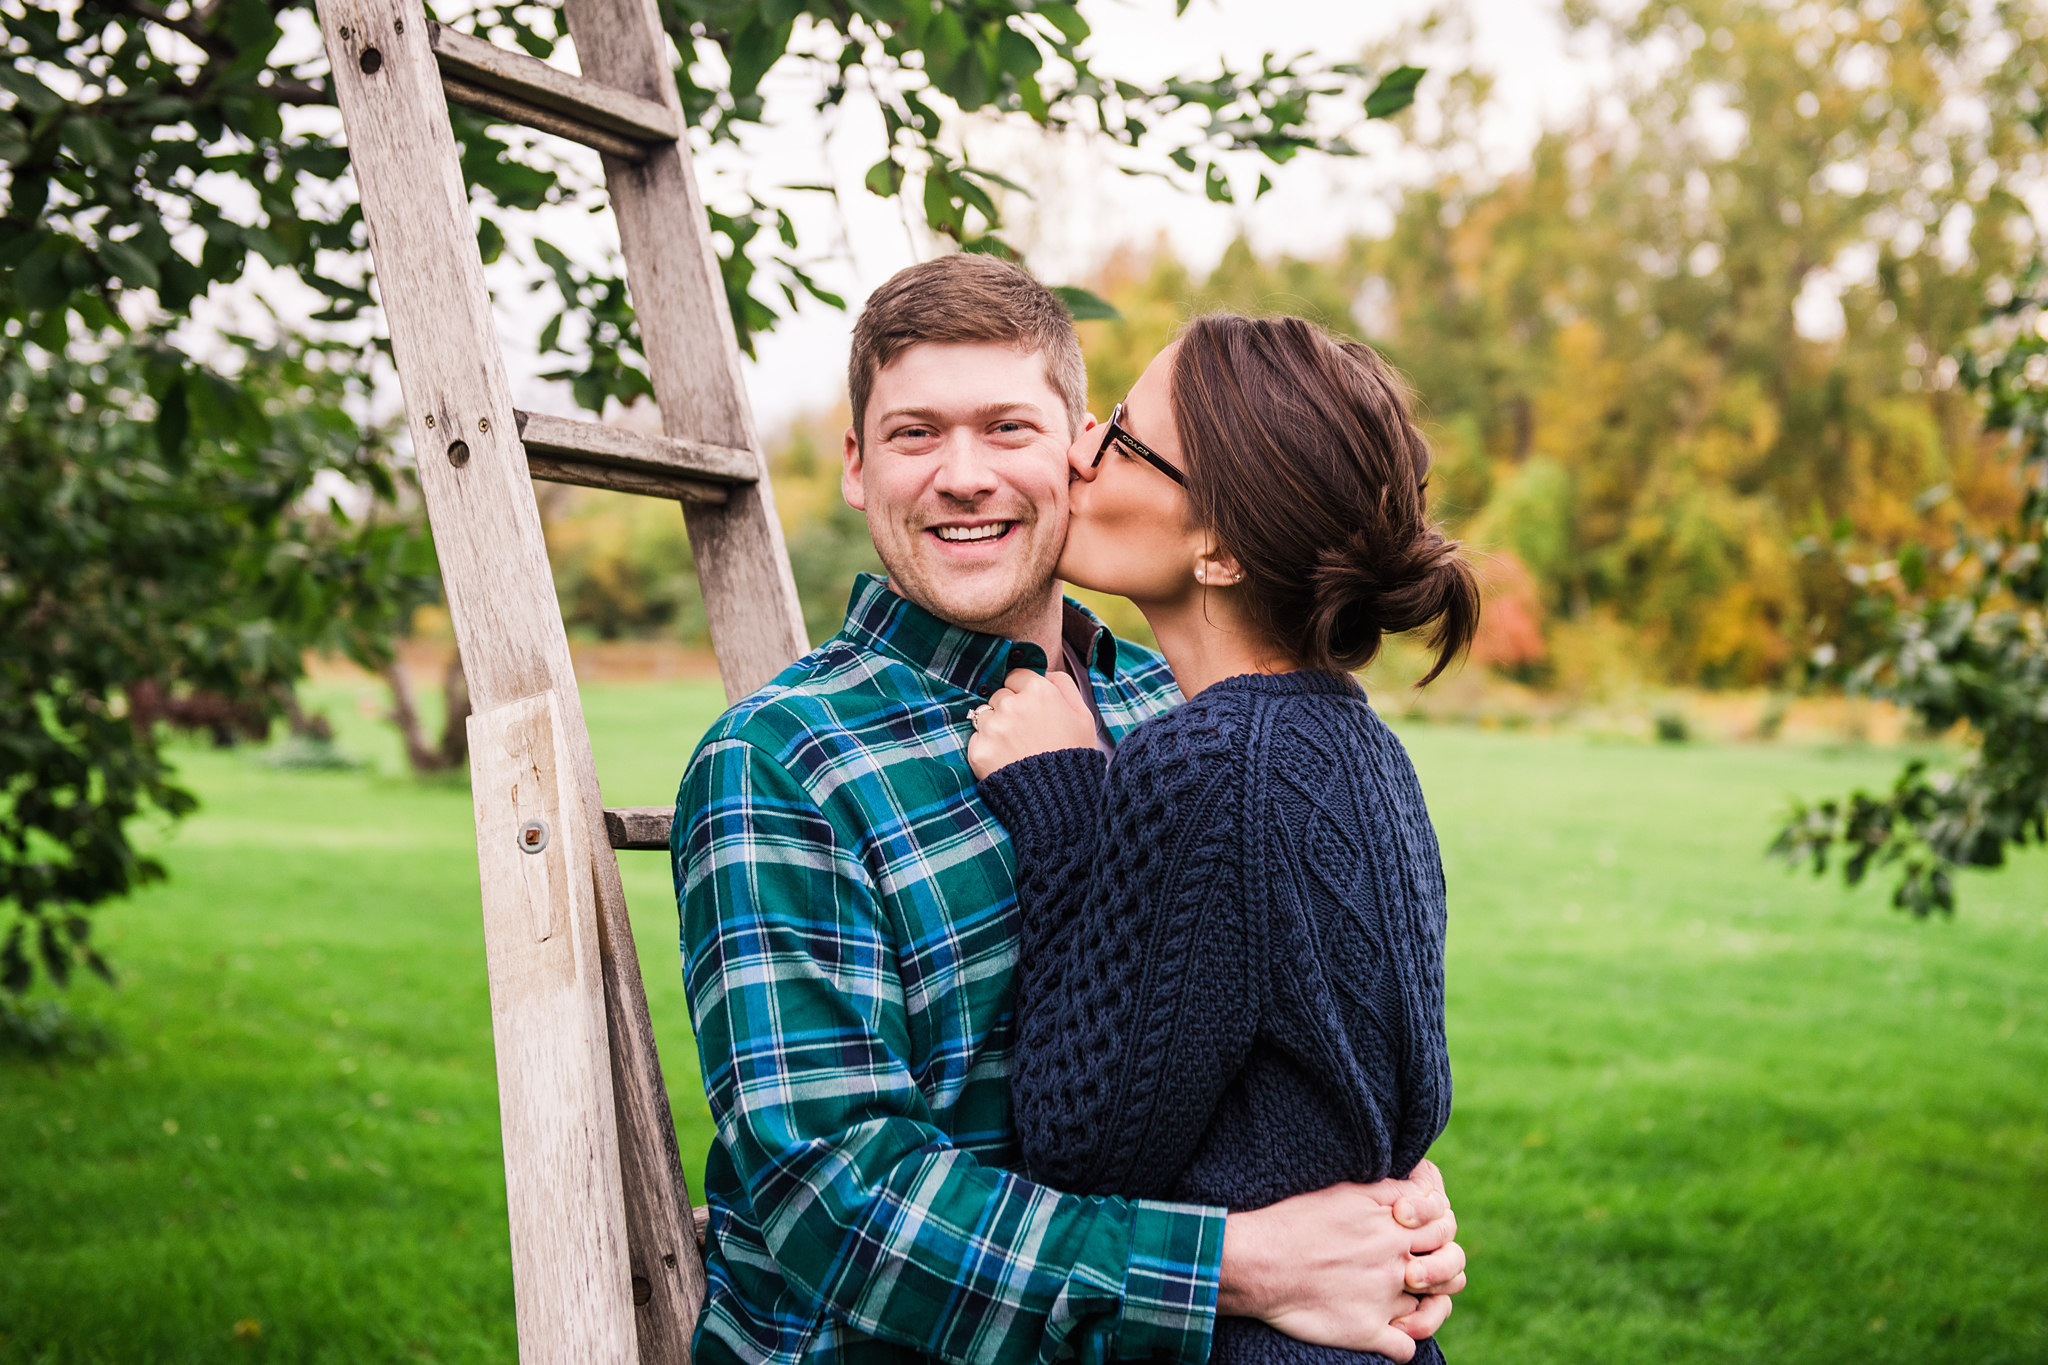 Hurd_Orchards_Rochester_Engagement_Session_JILL_STUDIO_Rochester_NY_Photographer_DSC_1896.jpg